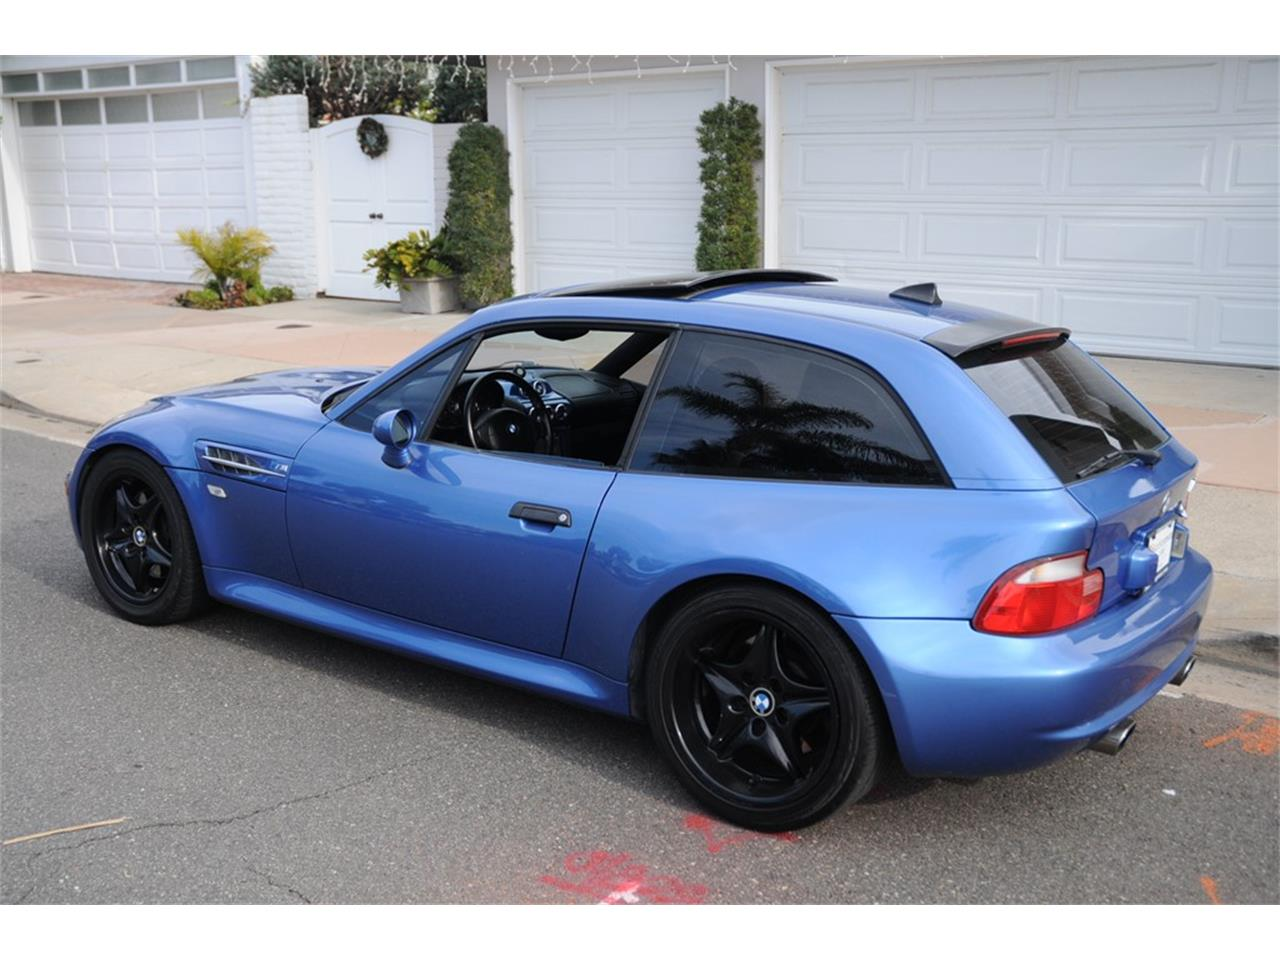 Large Picture of '00 BMW M Coupe located in Costa Mesa California - $17,990.00 - P65V